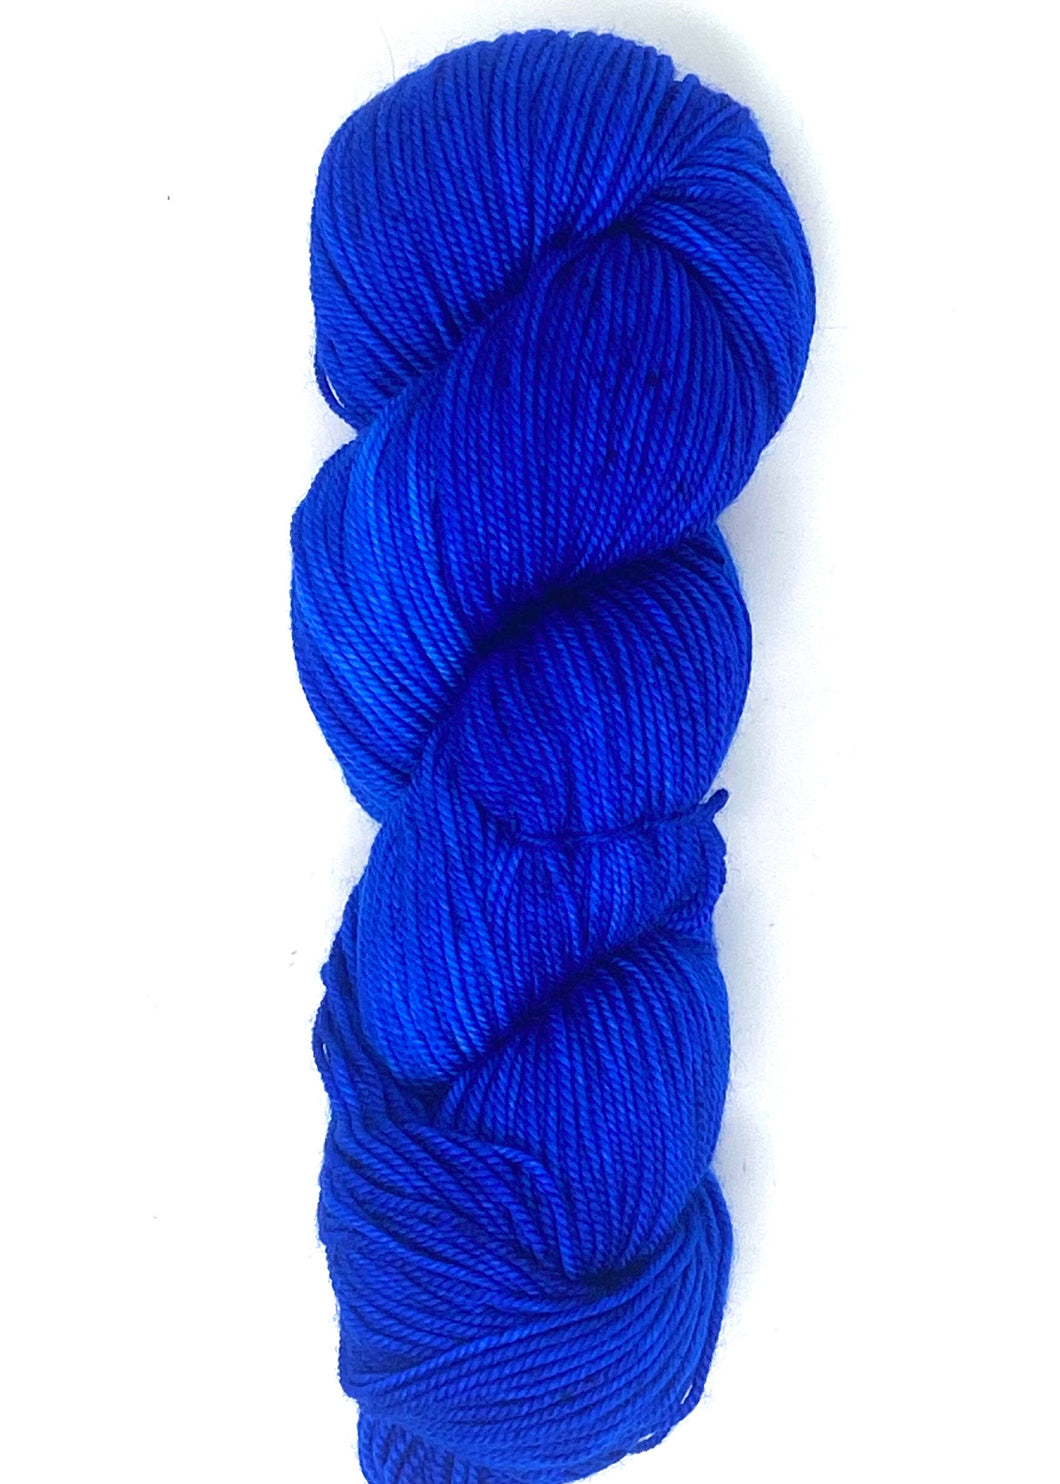 One Blue Love - Baah Yarn Sonoma